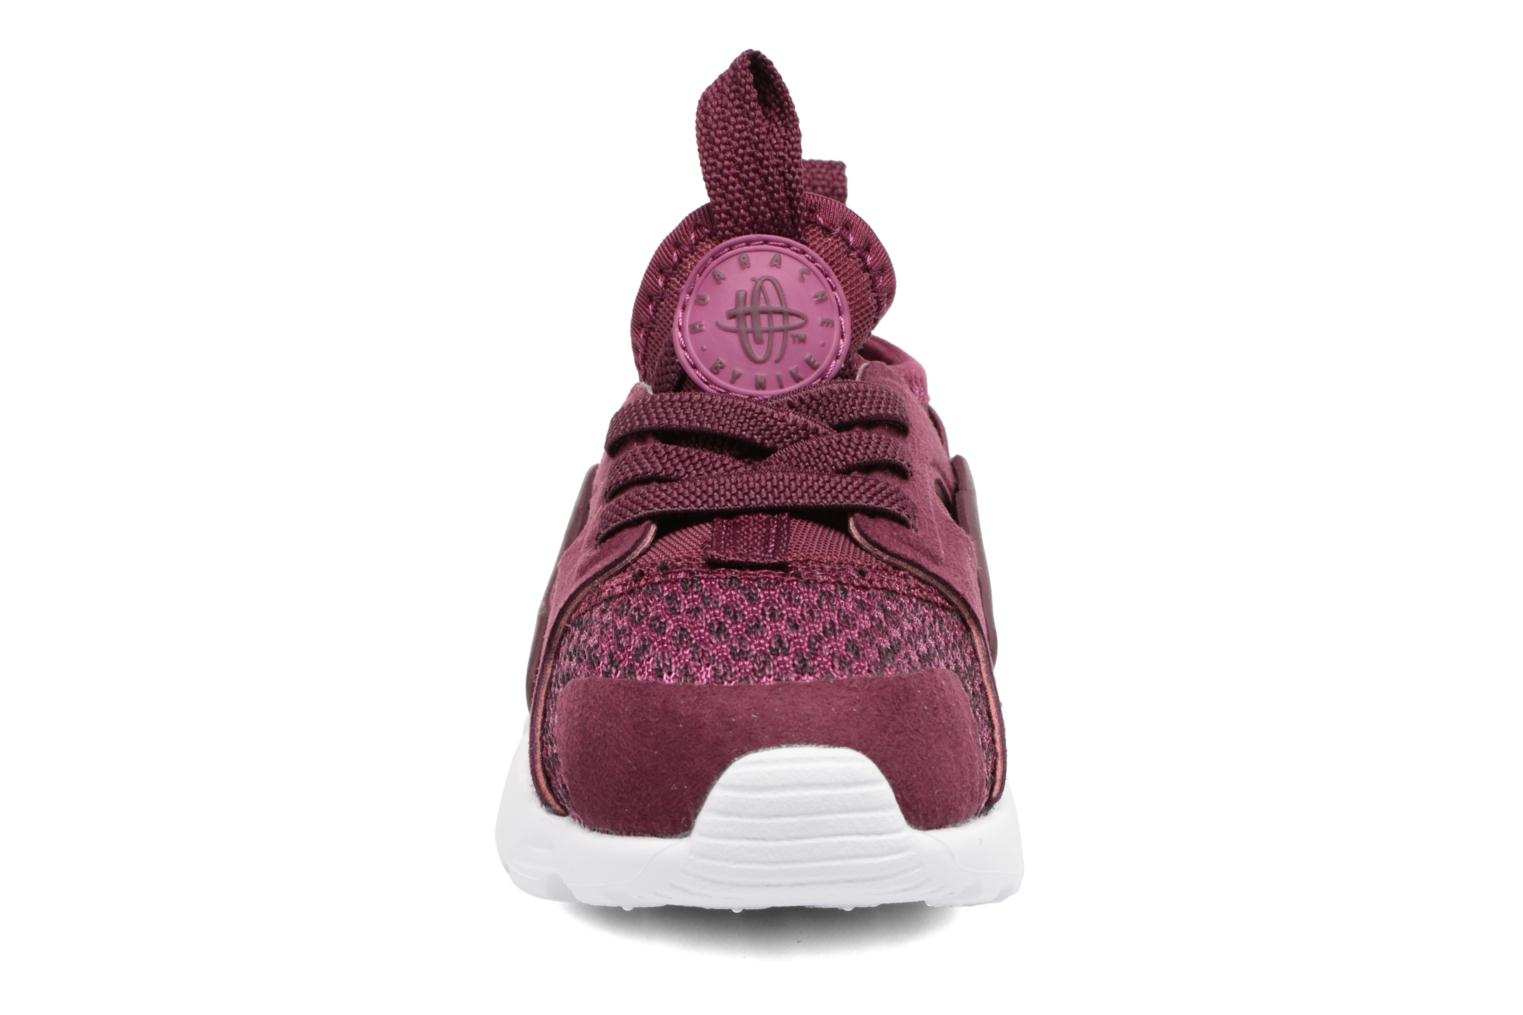 Bordeaux/Bordeaux-Tea Berry-Black Nike Huarache Run Ultra Se (Td) (Bordeaux)